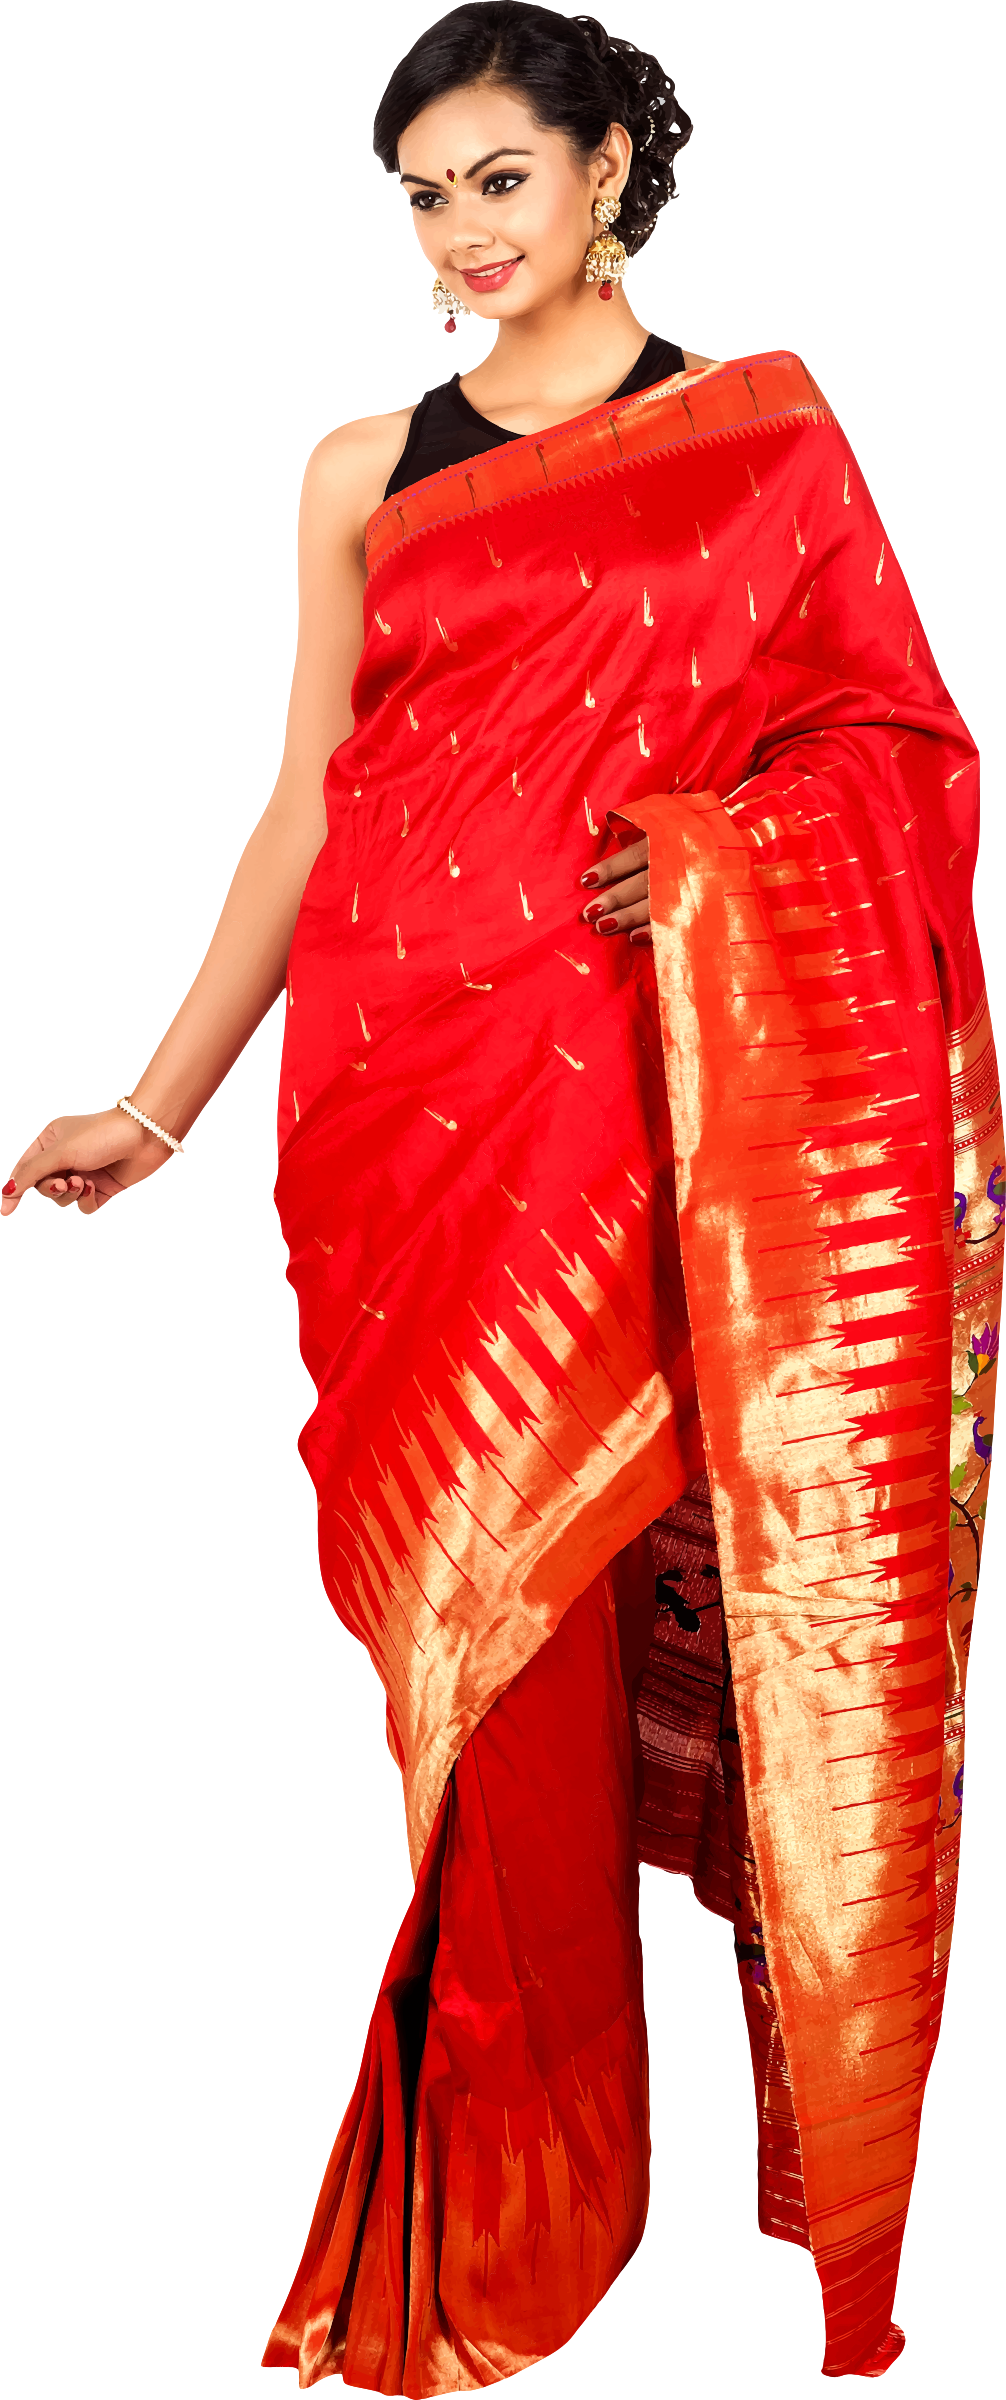 Woman in saree 6 by Firkin